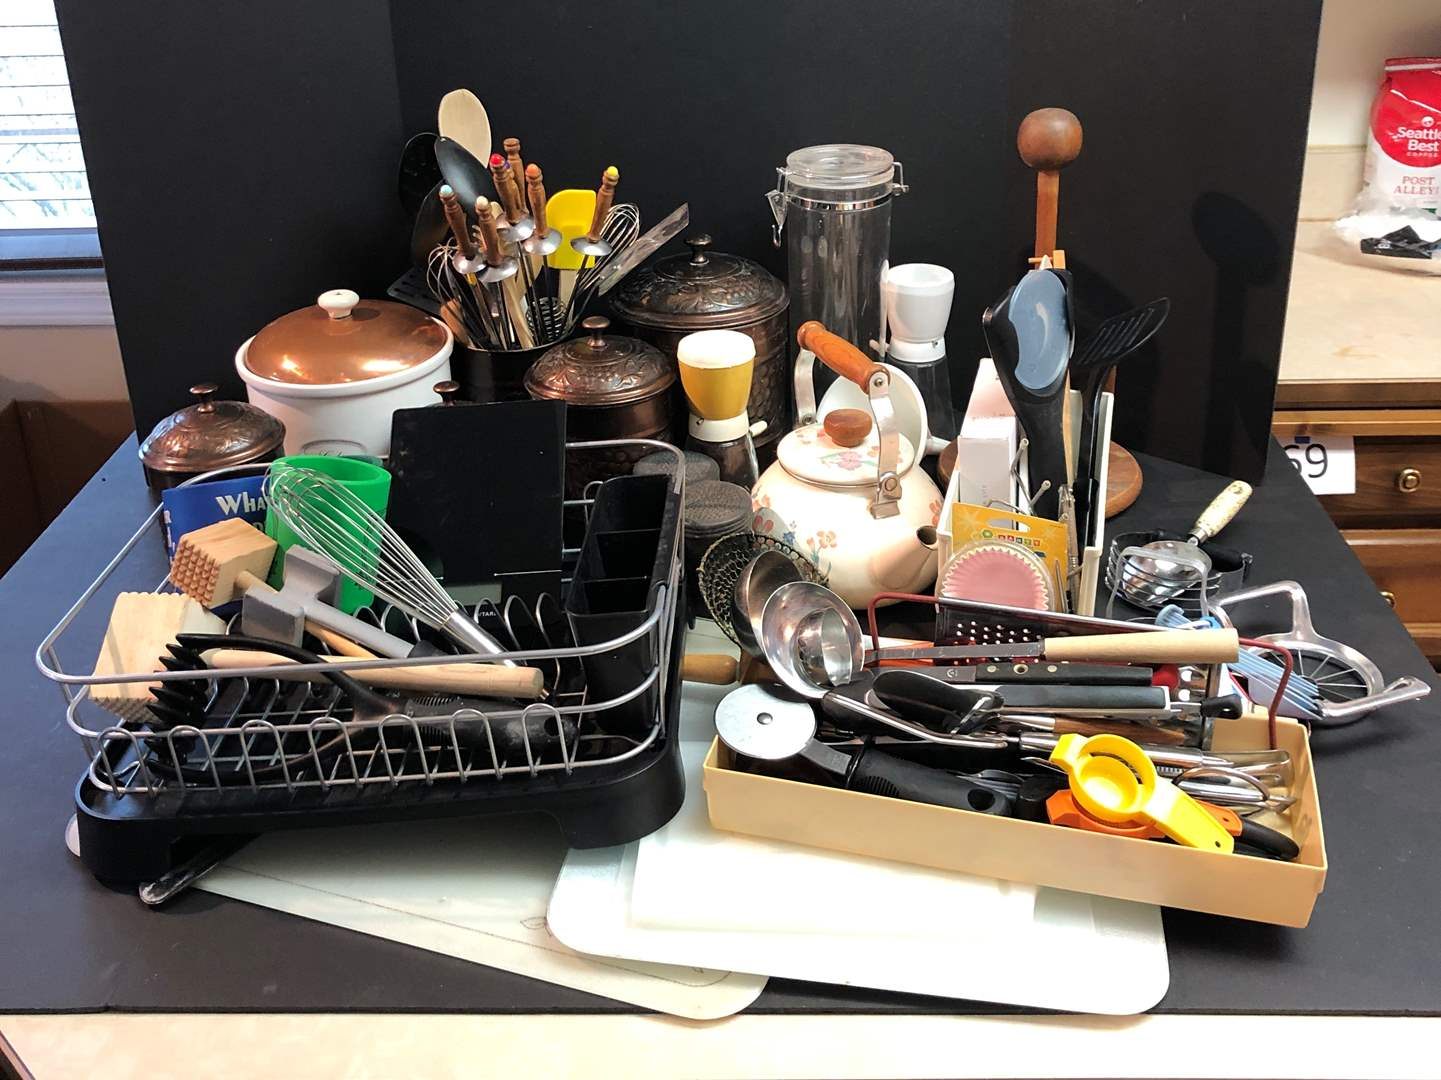 Lot # 72 - Large Selection of Kitchen Items: Wooden Spoons, Scale, Dish Rack, Canisters, Cookie Jar, Kettle & More.. (main image)